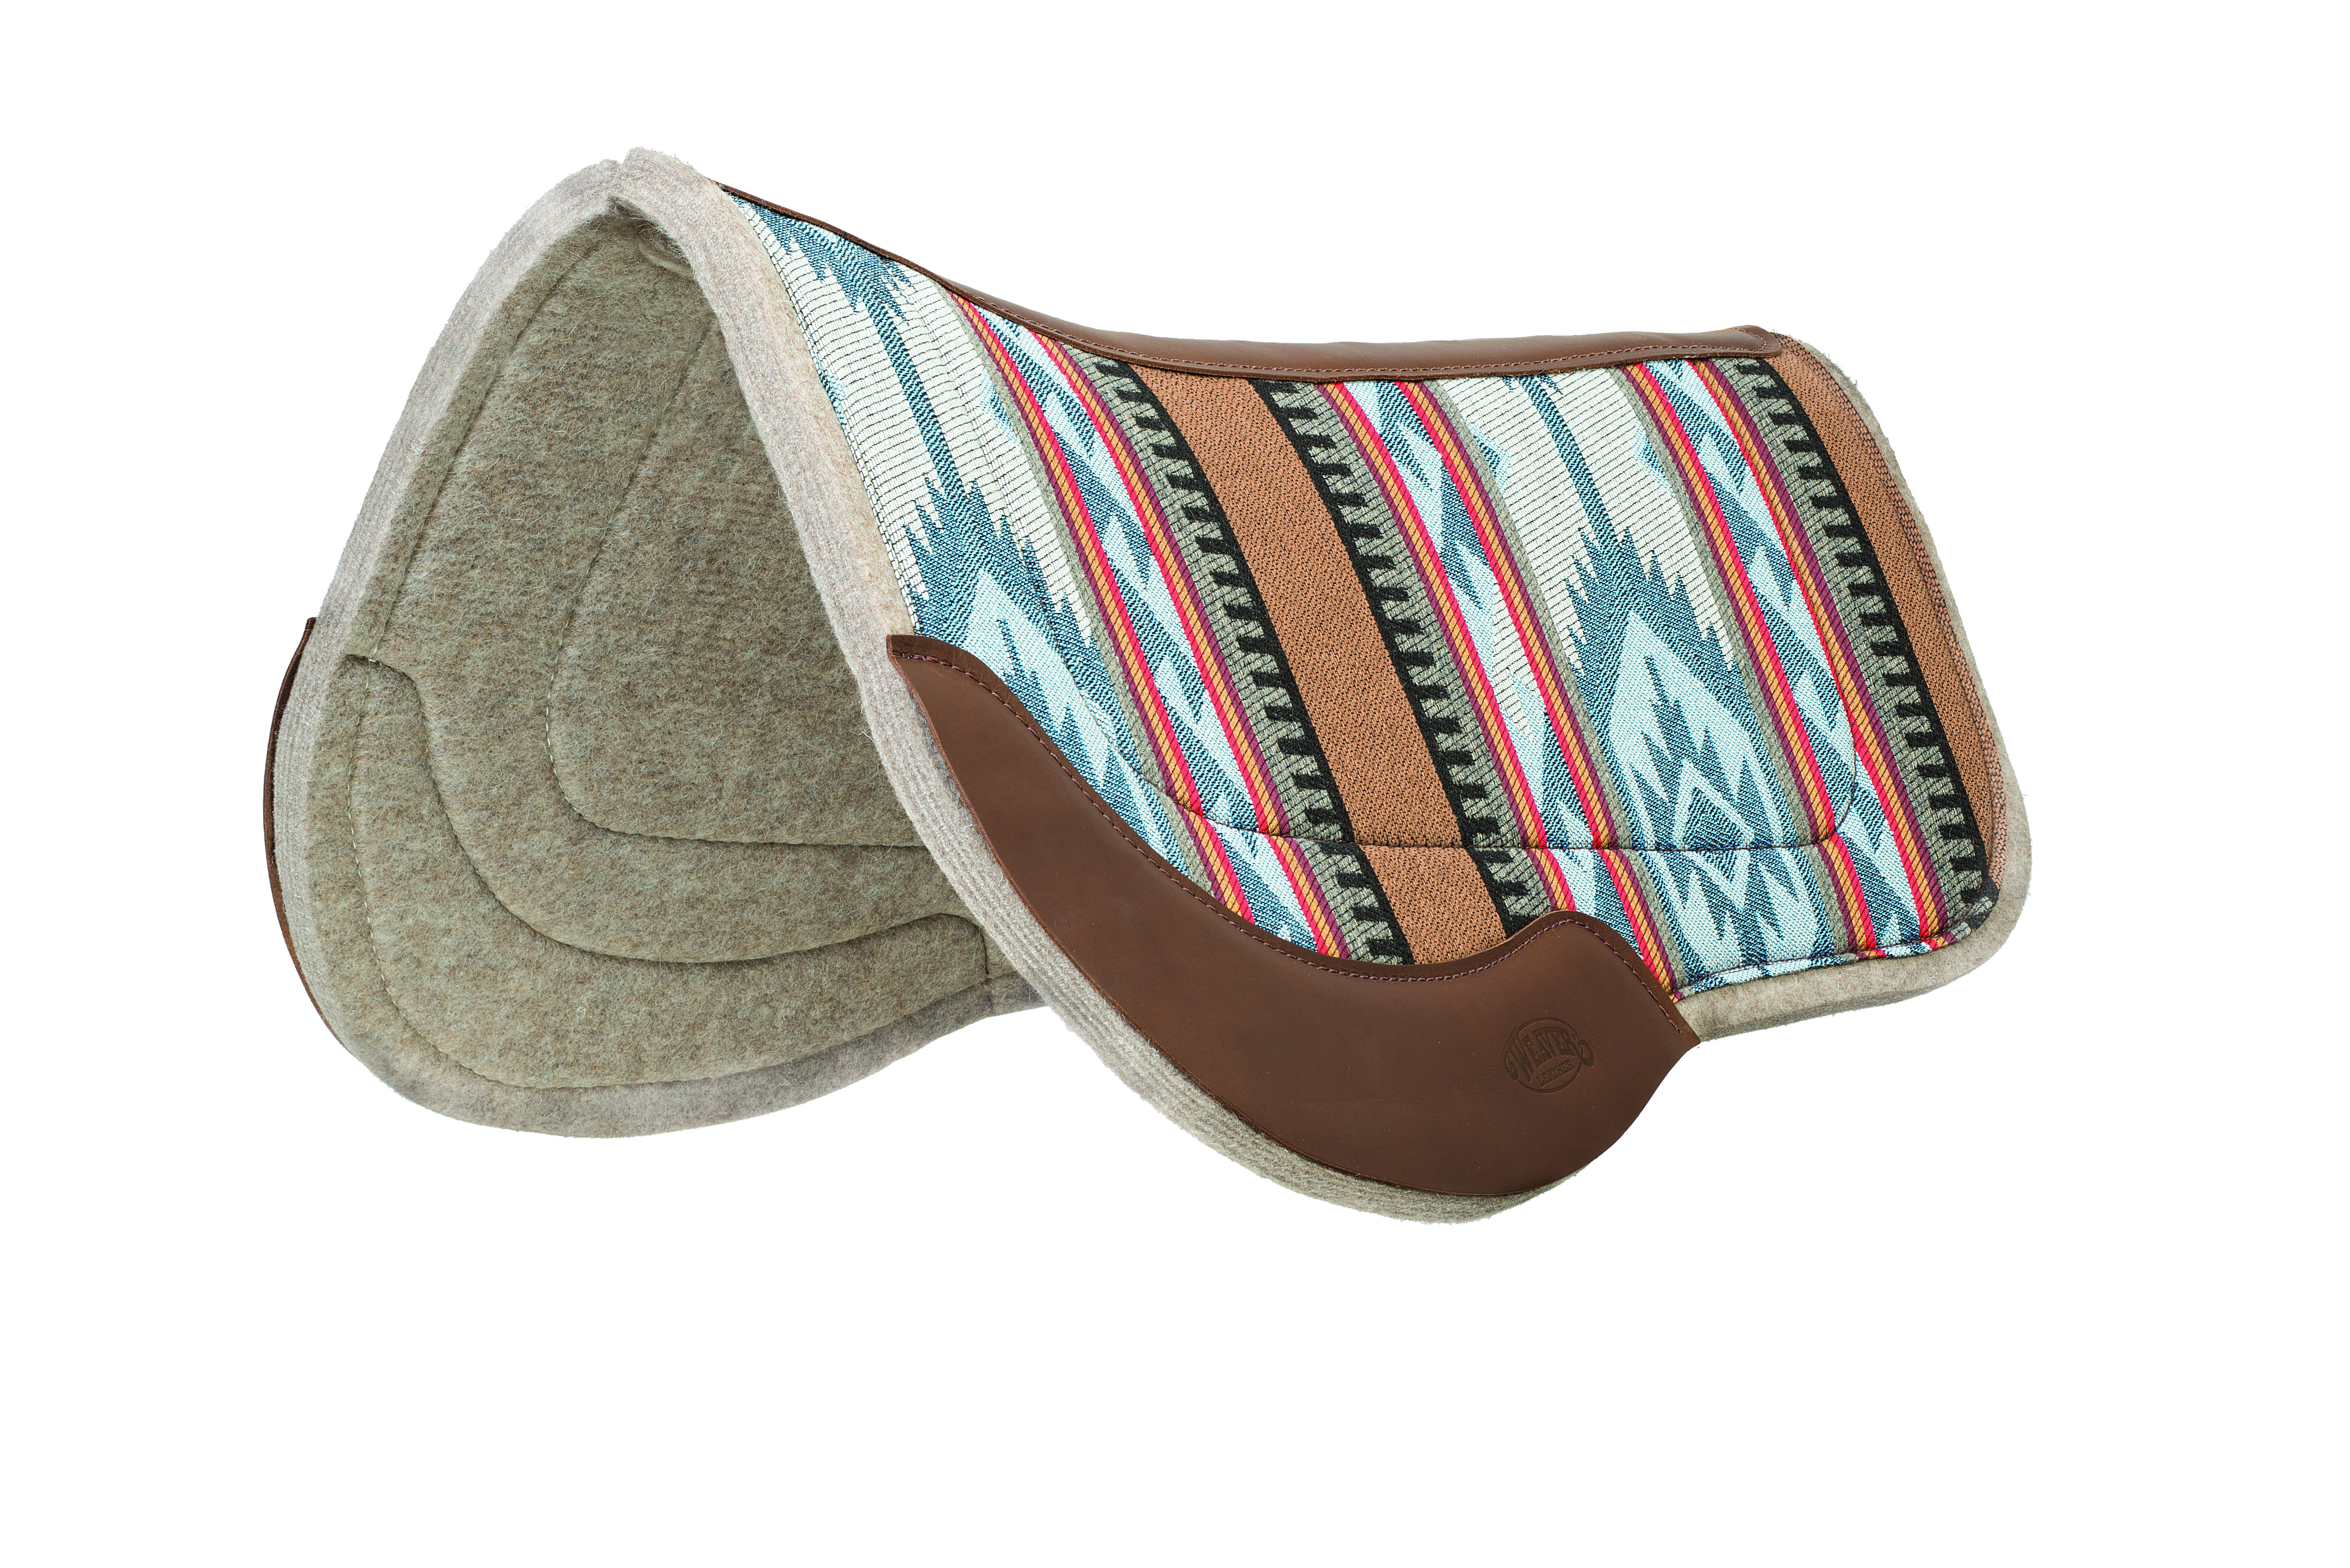 Weaver 29x34 Trail Gear Canvas Felt Bottom Saddle Pad Blue